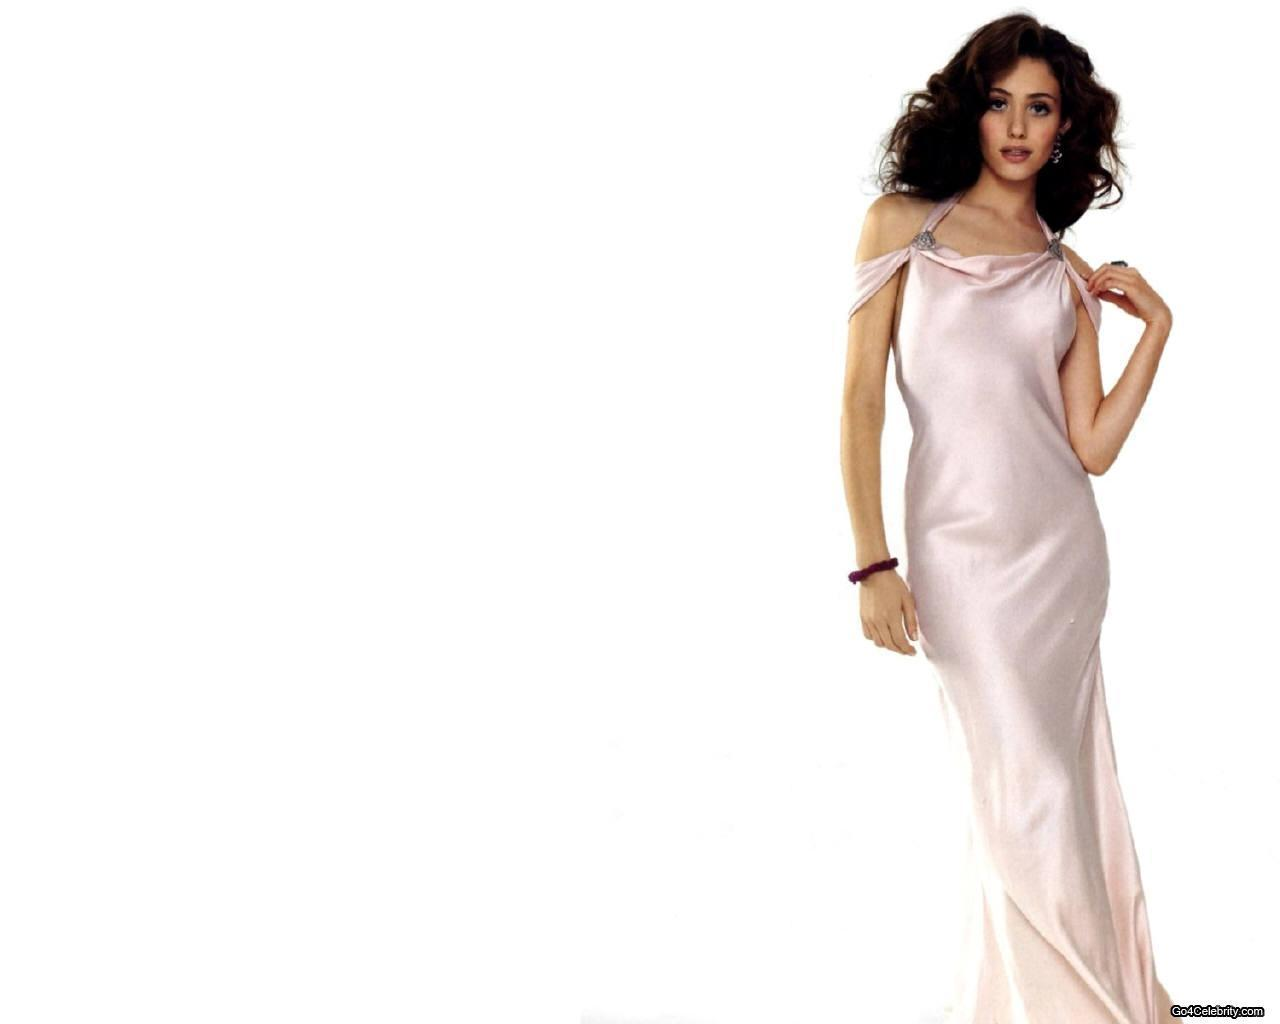 http://images2.fanpop.com/images/photos/3100000/Emmy-wallpaper-emmy-rossum-3159653-1280-1024.jpg